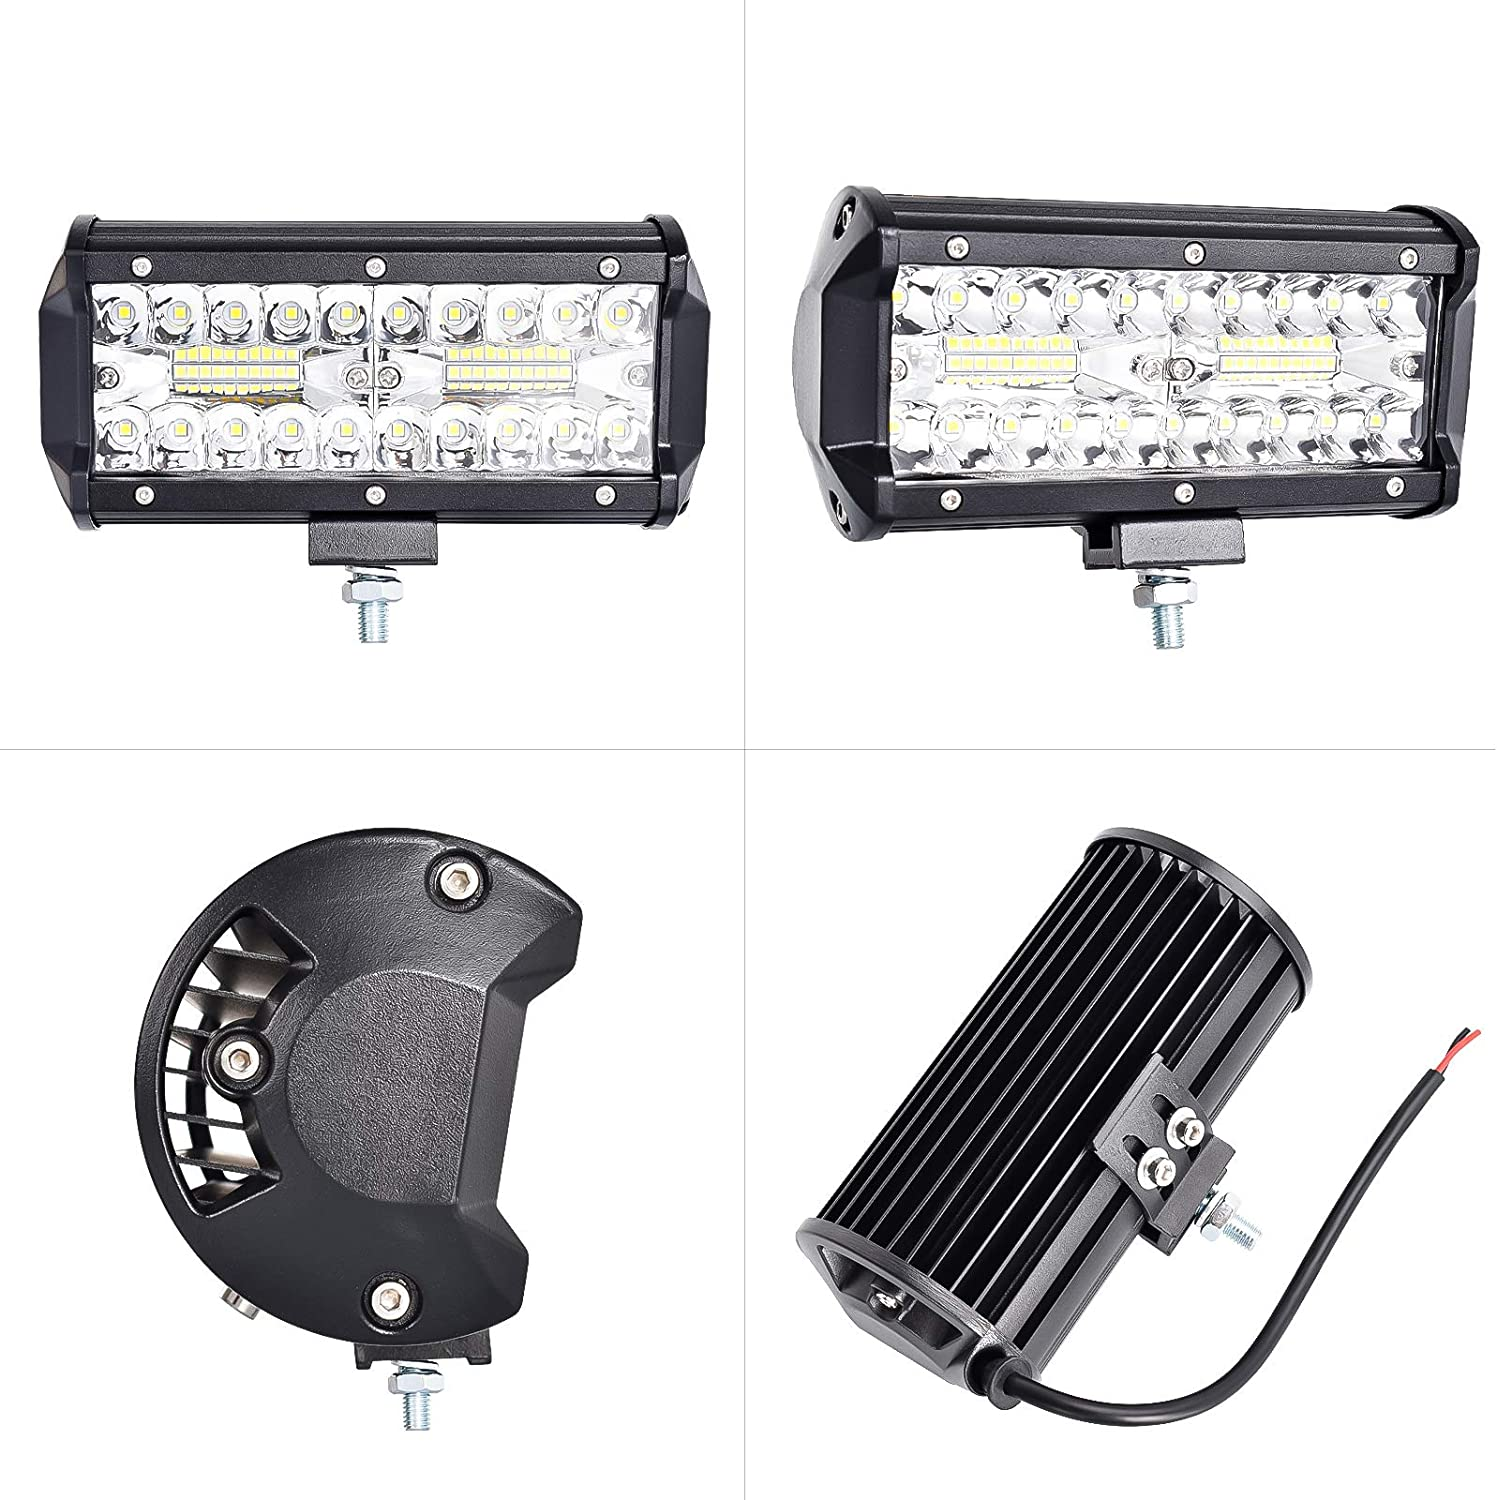 nifeida 7 LED Light Bar with Spot /& Flood Combo Beam Waterproof Triple Rows LED Work Light for Jeep Off-Road Truck Car ATV SUV Cabin Boat 2PCS 240W 24,000LM Off Road Fog Light Driving Lights